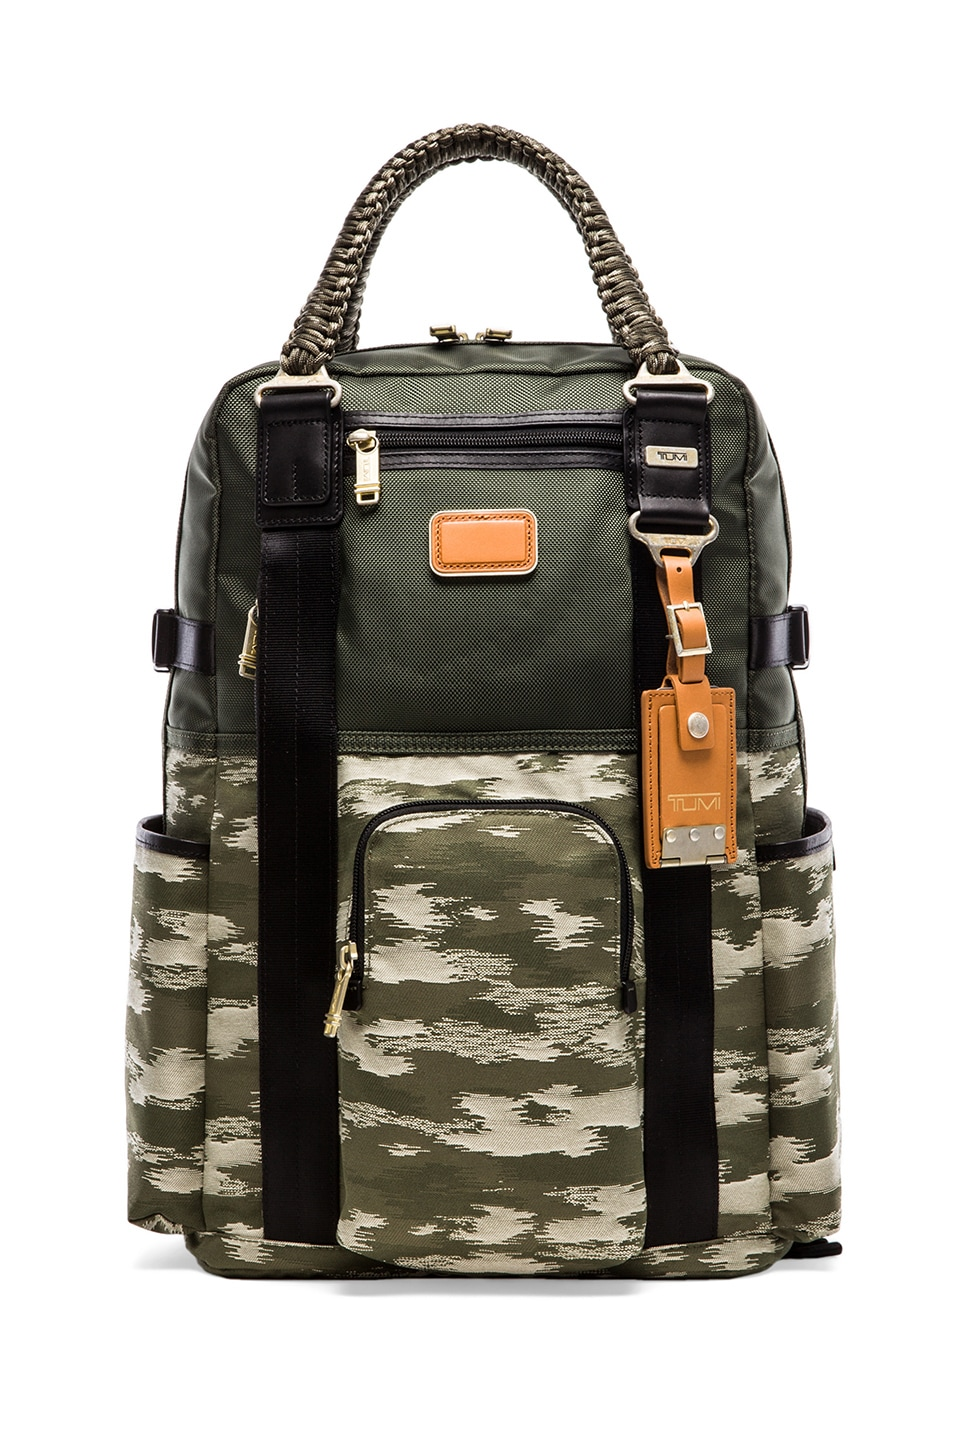 Tumi Alpha Bravo Lejeune Backpack Tote in Spruce & Camo